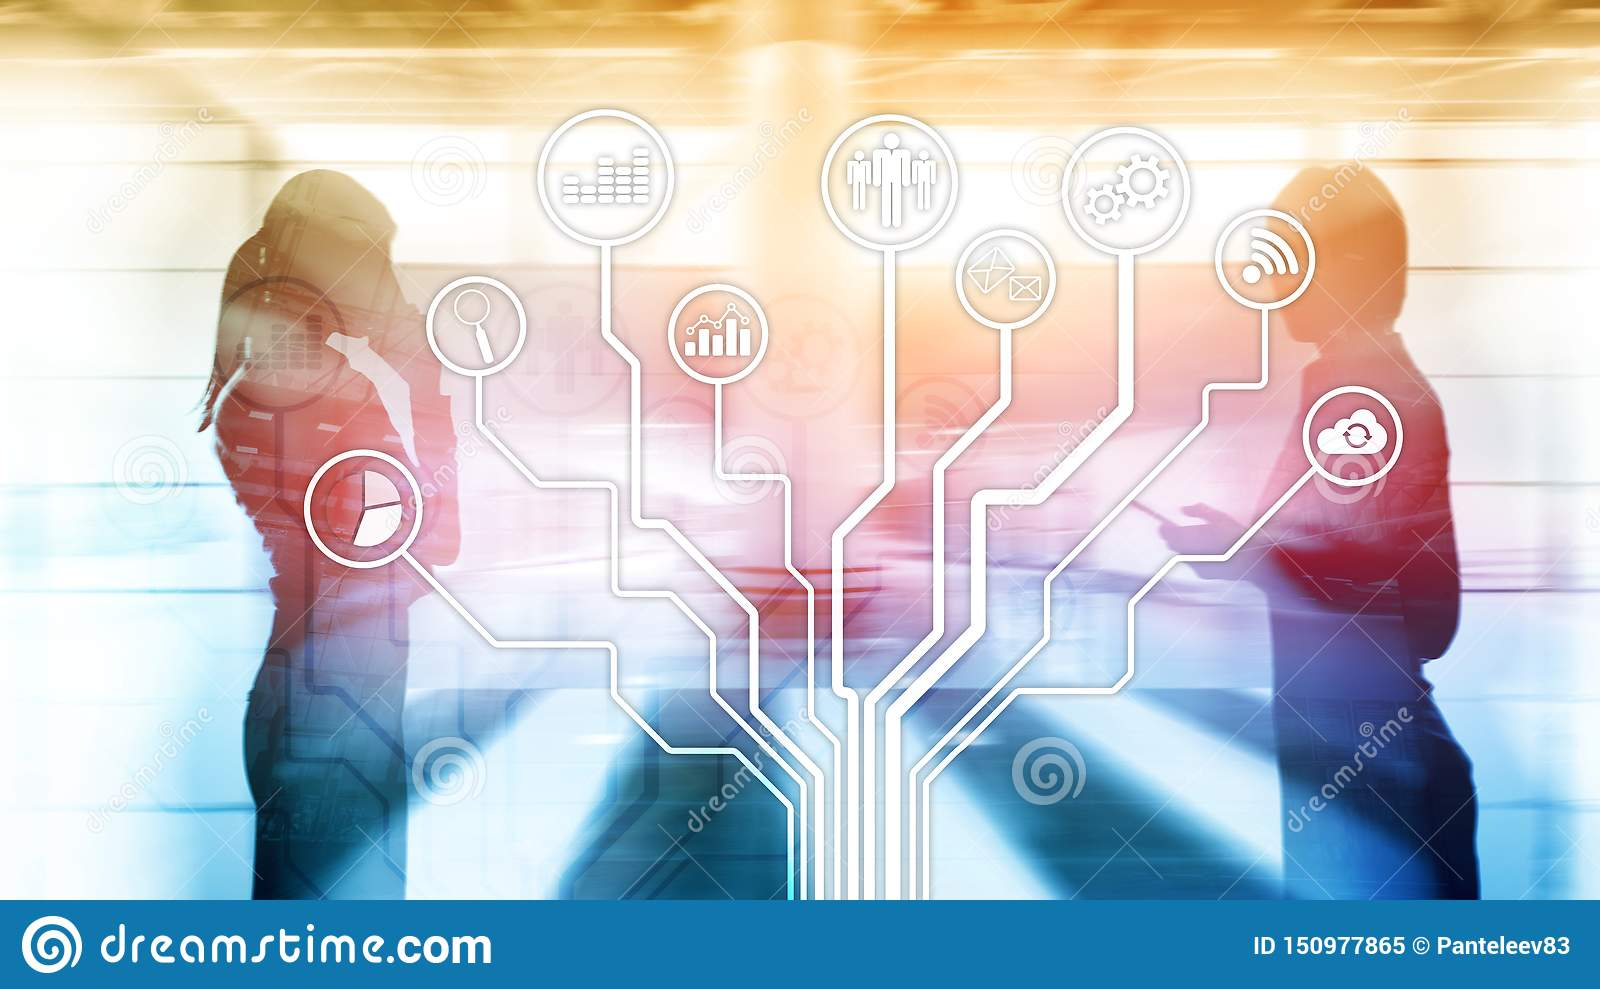 Business applications icons on blurred background. Financial and trading. Internet technology concept